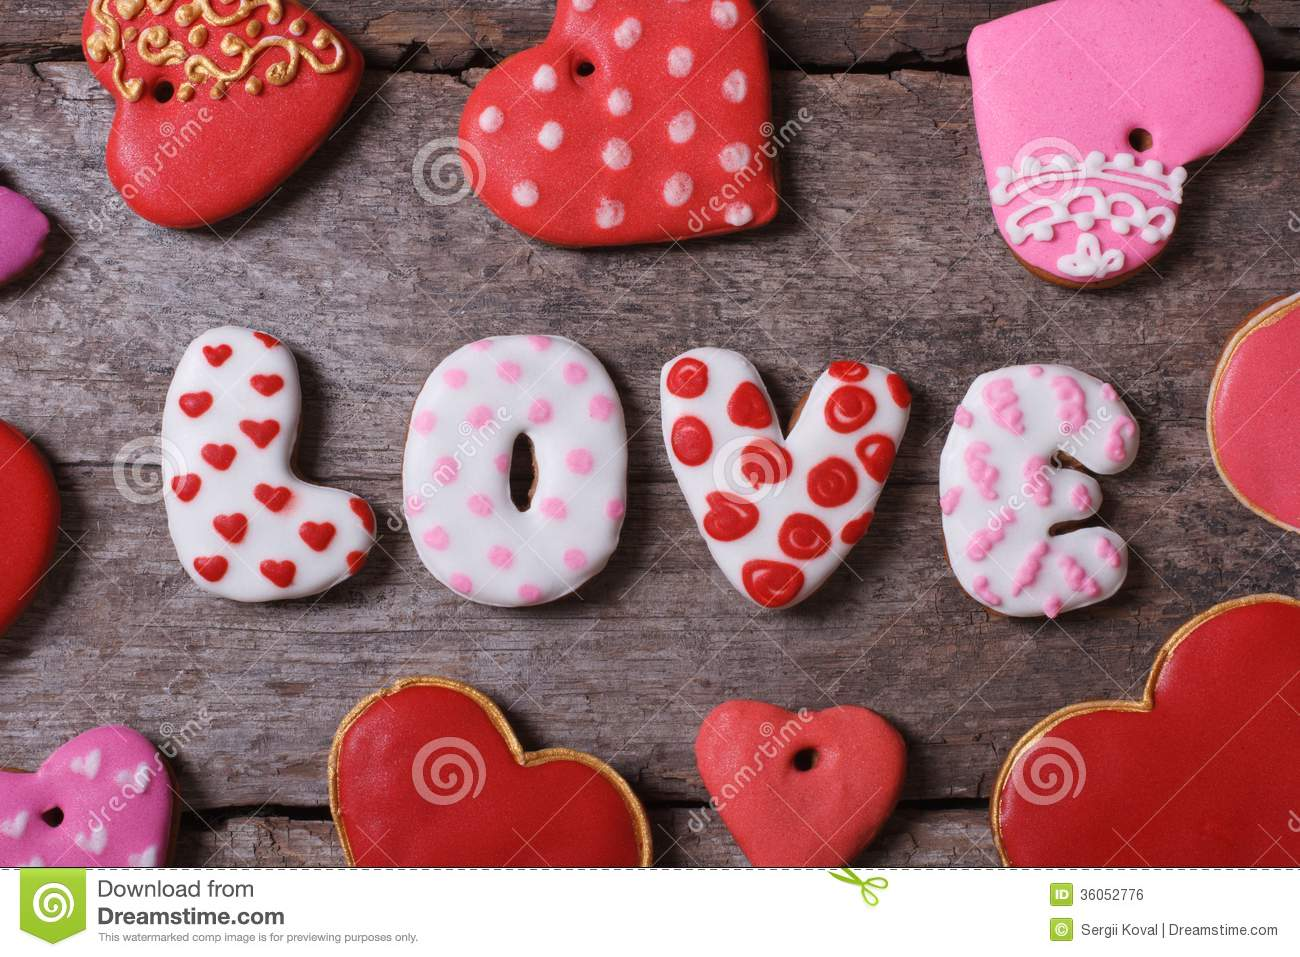 Love And Heart Beautiful Cakes On A Wooden Table Stock